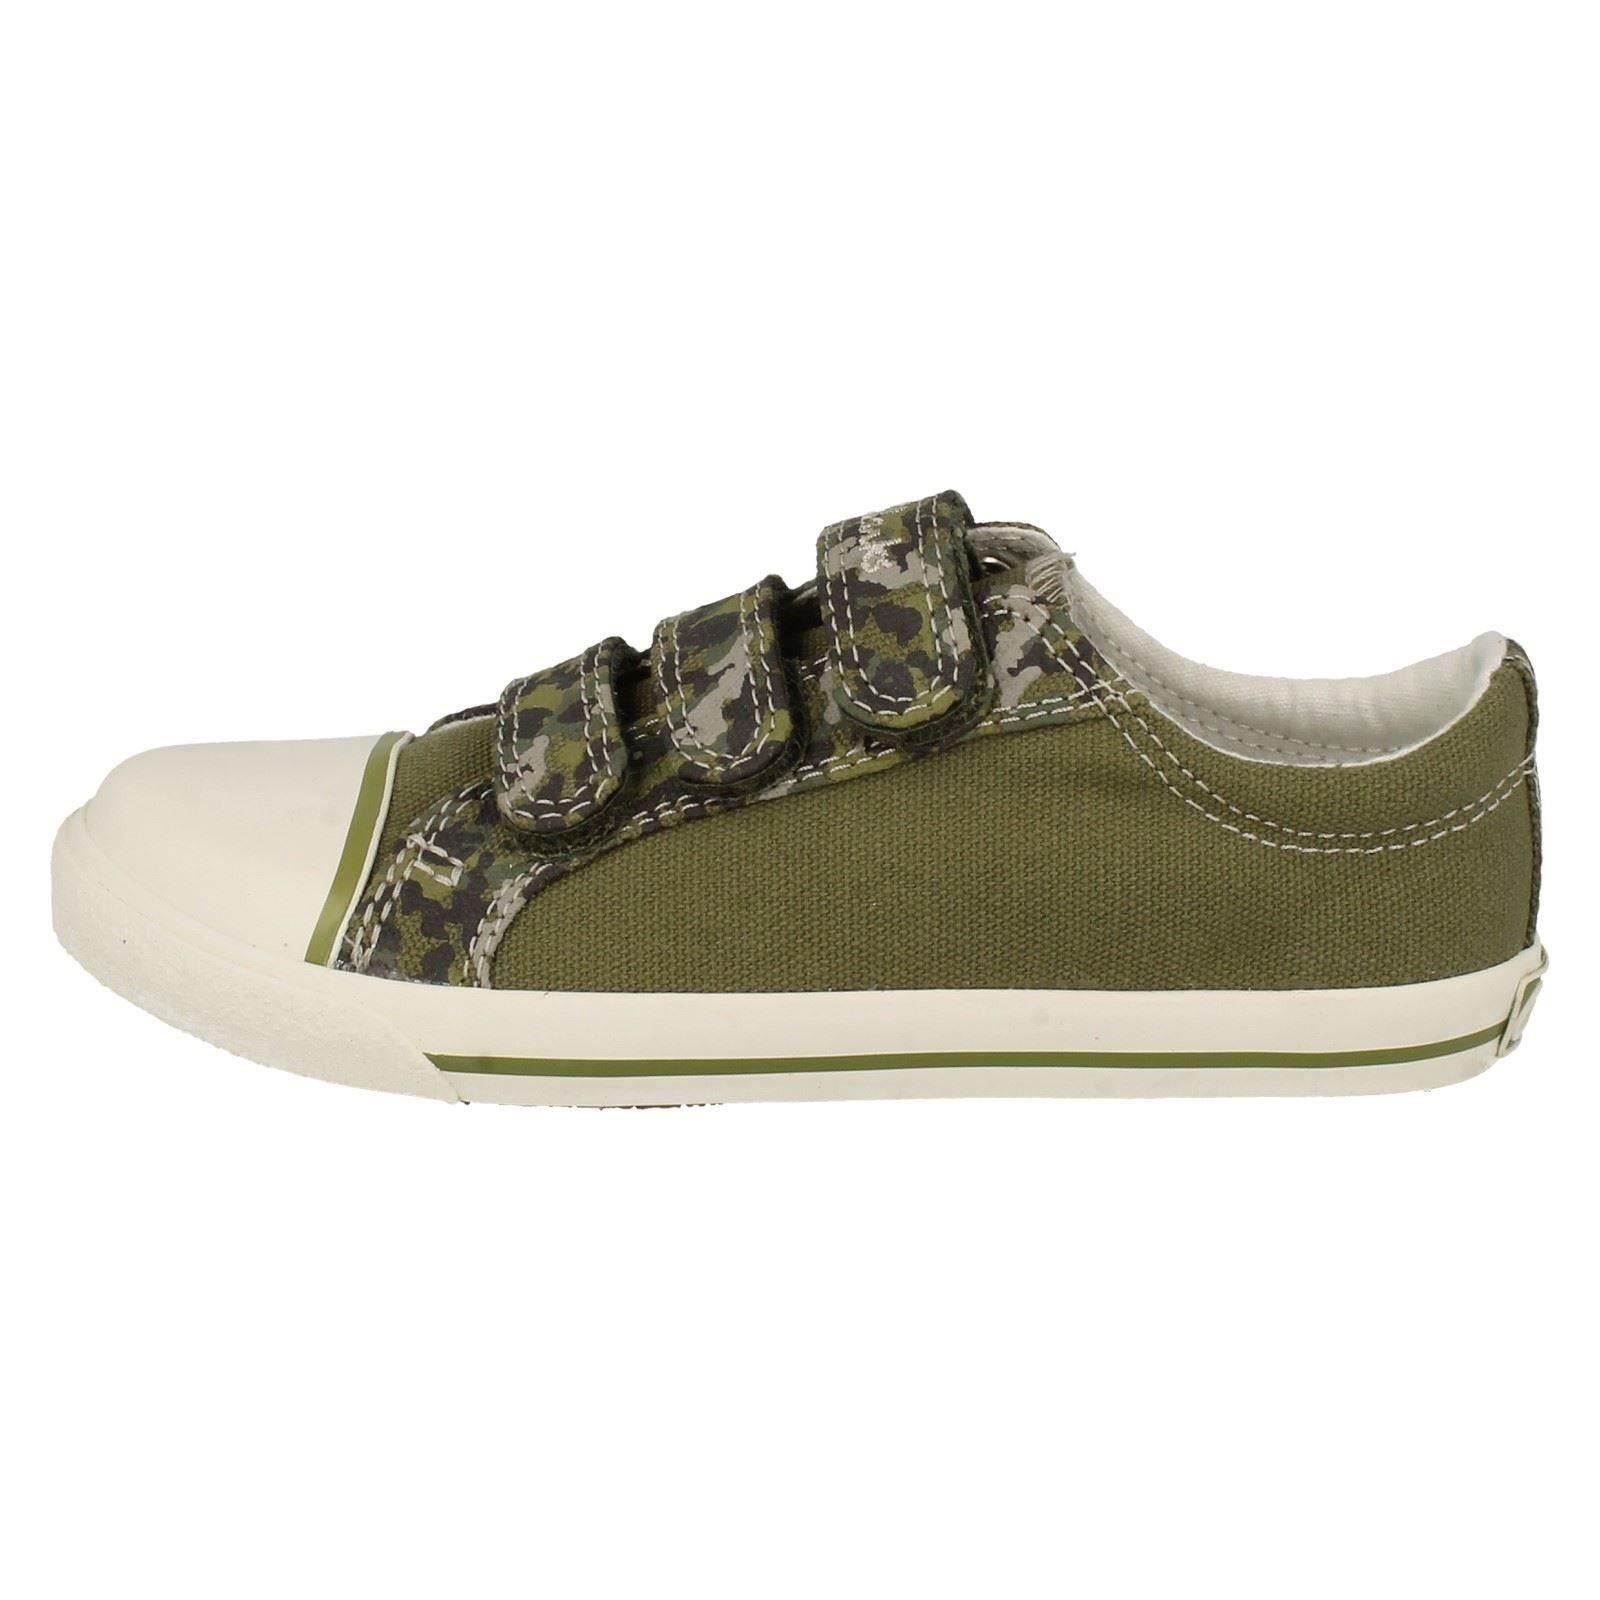 boys clarks canvas shoes happy chap inf ebay